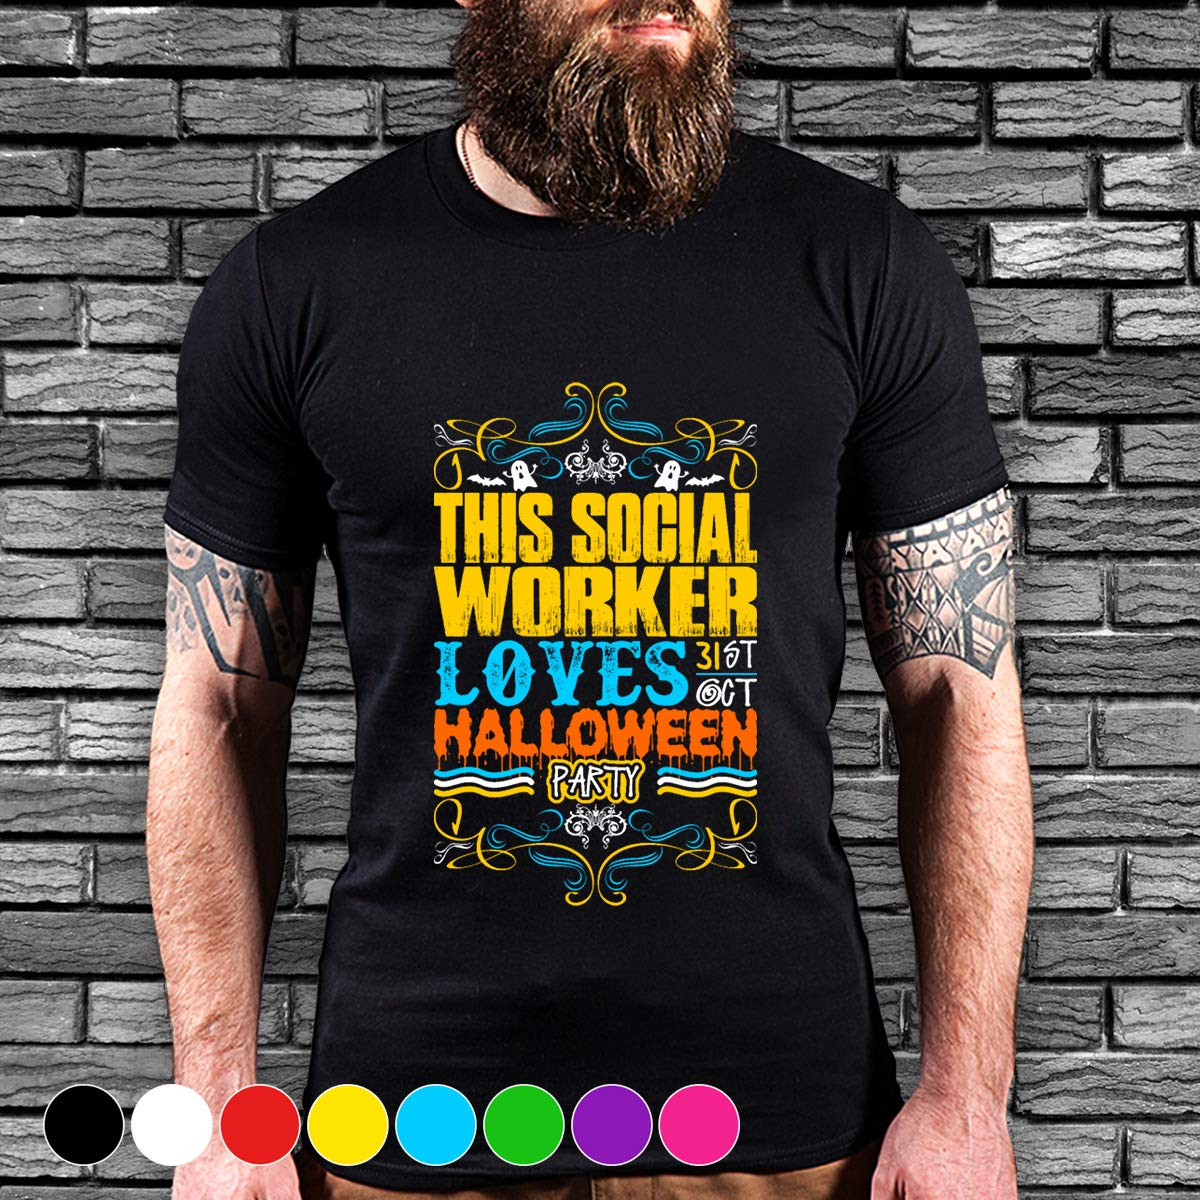 Social Worker This Social Worker Loves 31st Oct Halloween Party T Shirt